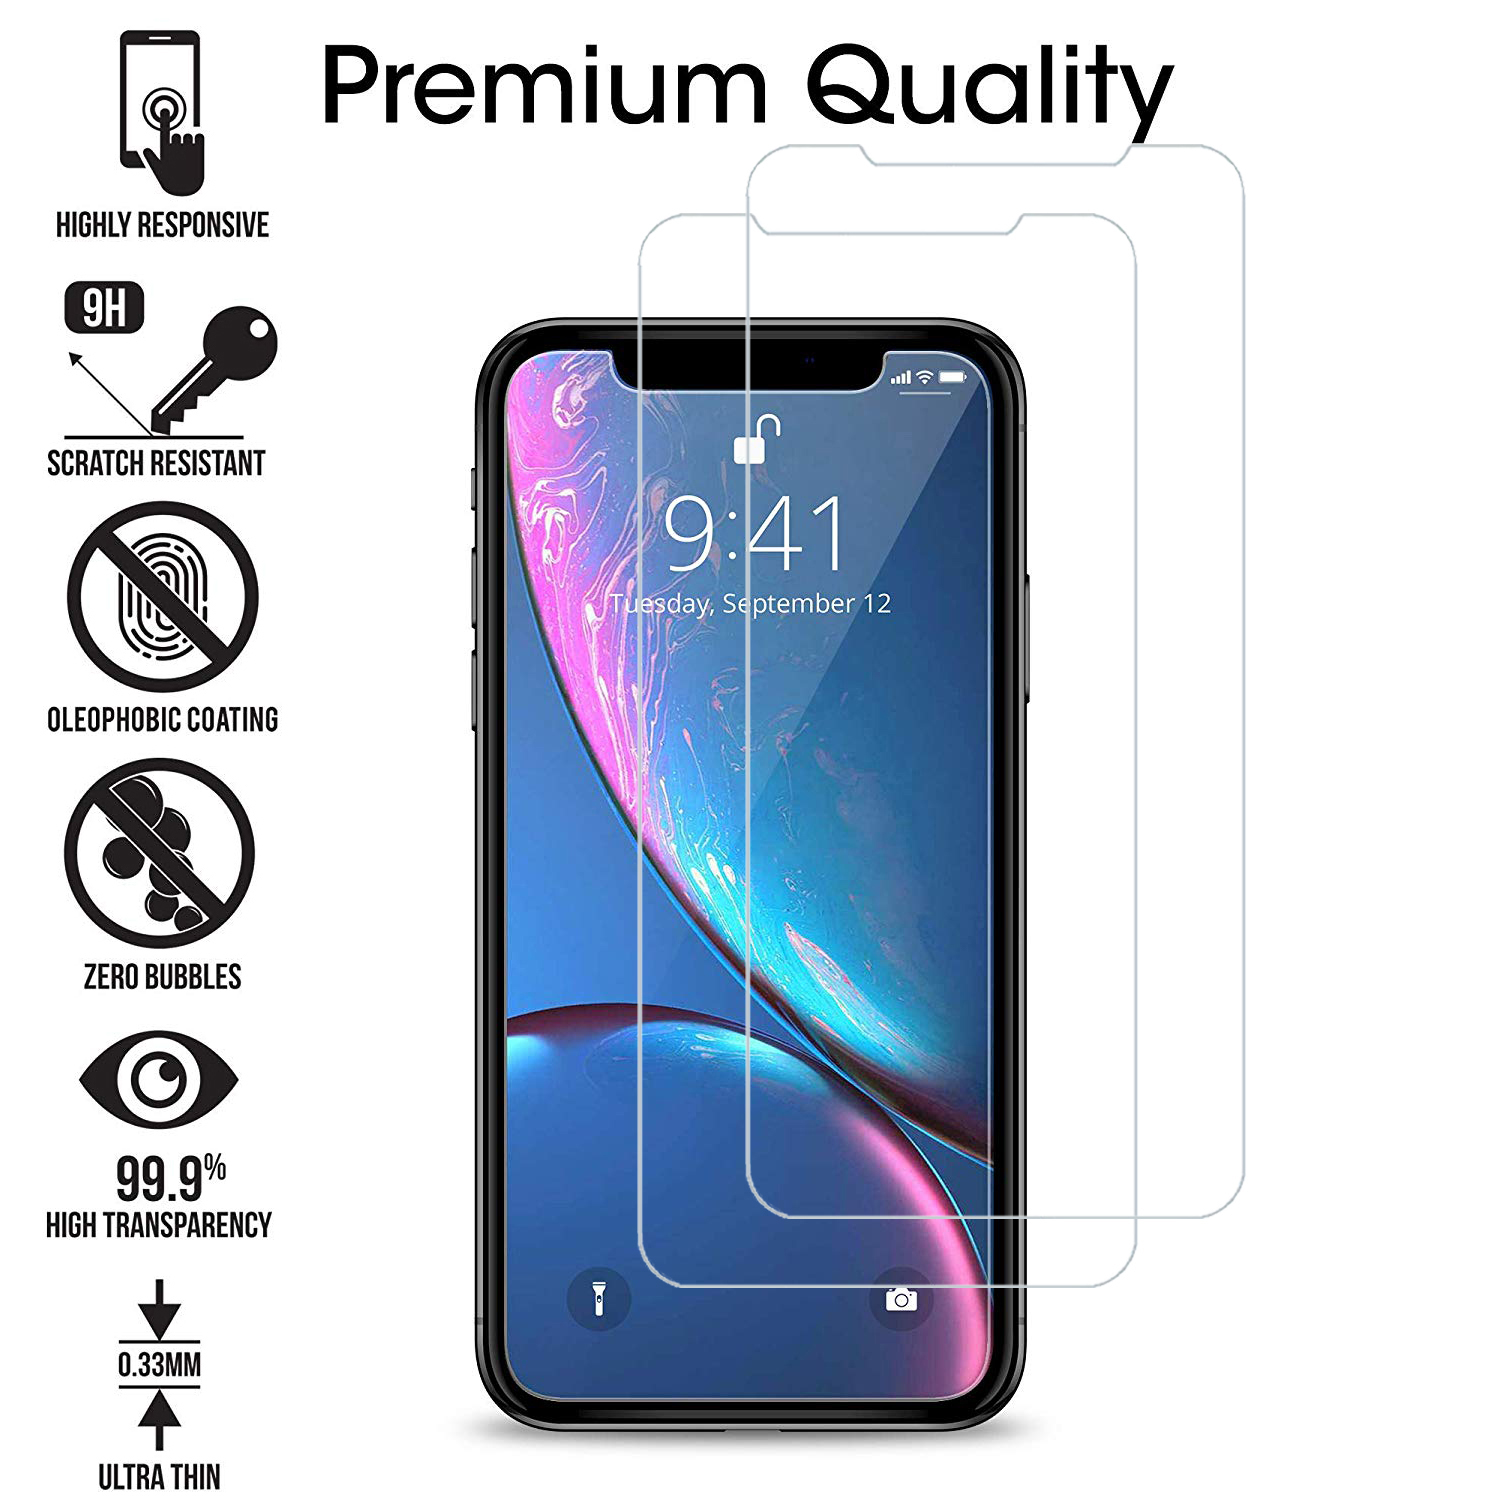 thumbnail 14 - Leather Flip Wallet Case Tempered Glass Cover For iPhone 11 Pro Max XS XR 8 7 6s